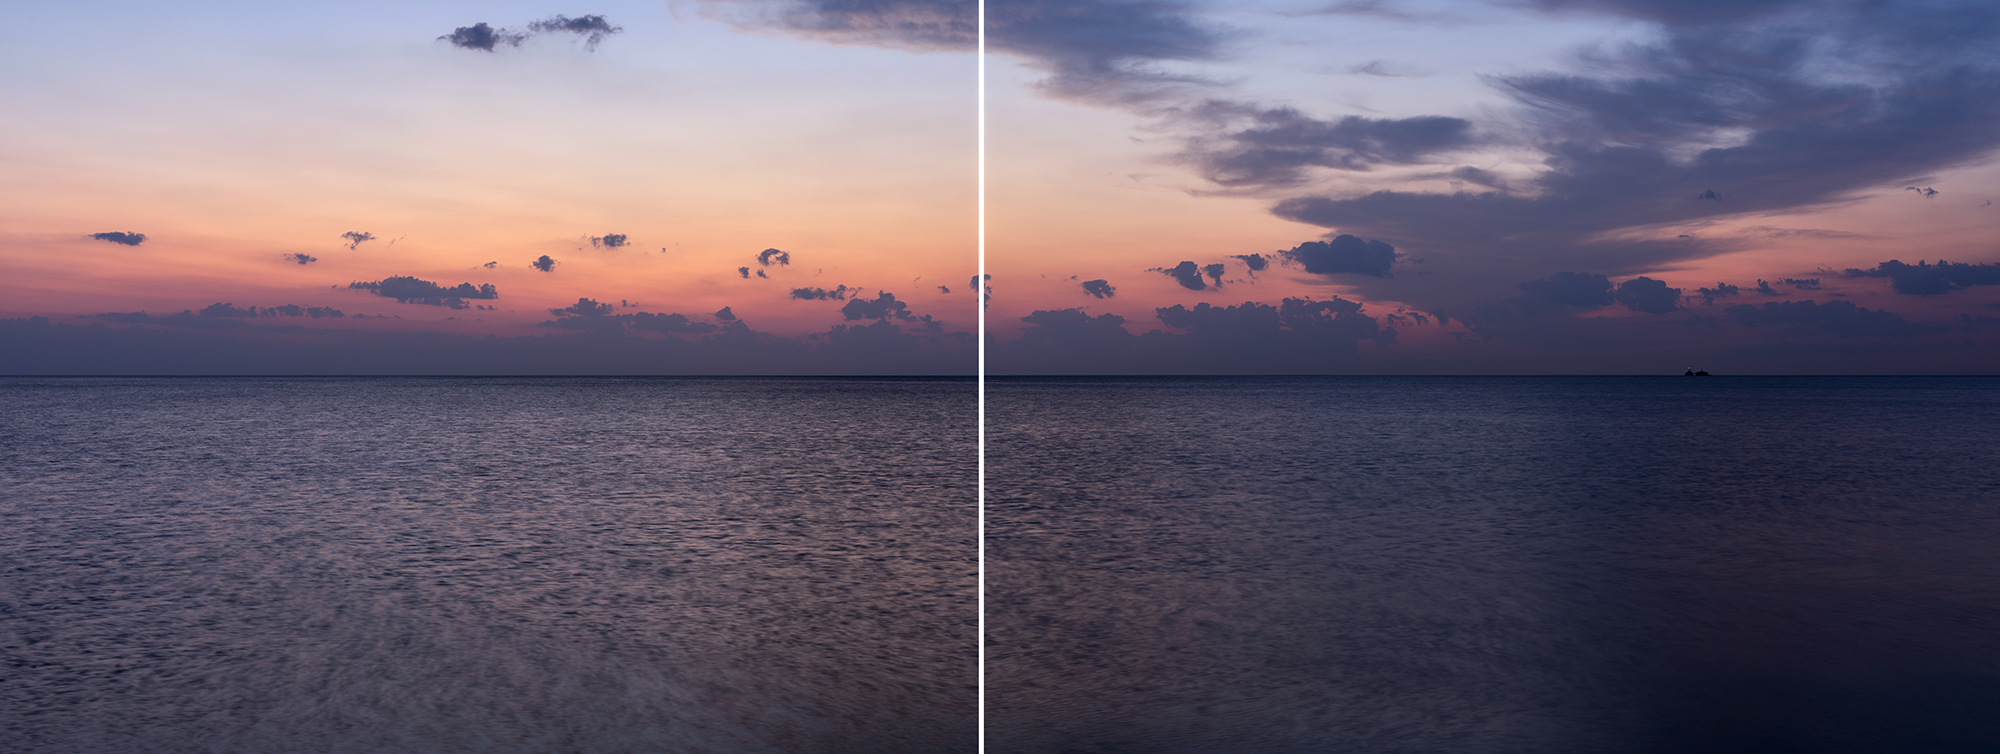 a Colorful Lake Sunrise where purple, peach, pastels and oranges all fill the sky where light cloud cover builds in the right side of the two photos, the lake ripples gently beneath